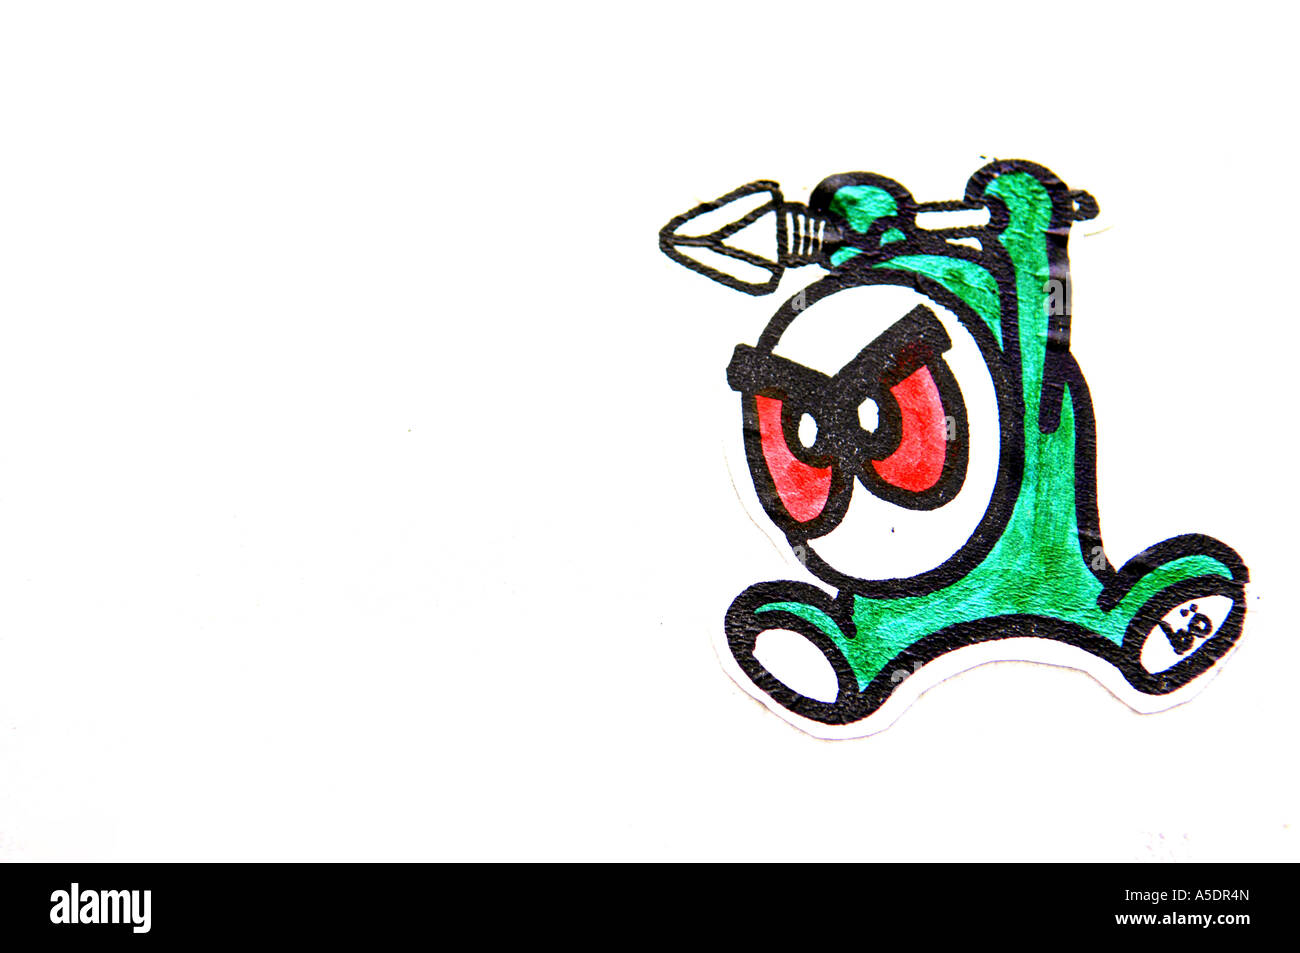 Graffiti Sticker Little Green Character Attack Spear Red Eyes Cartoon Caricature Design Art Arty White Black